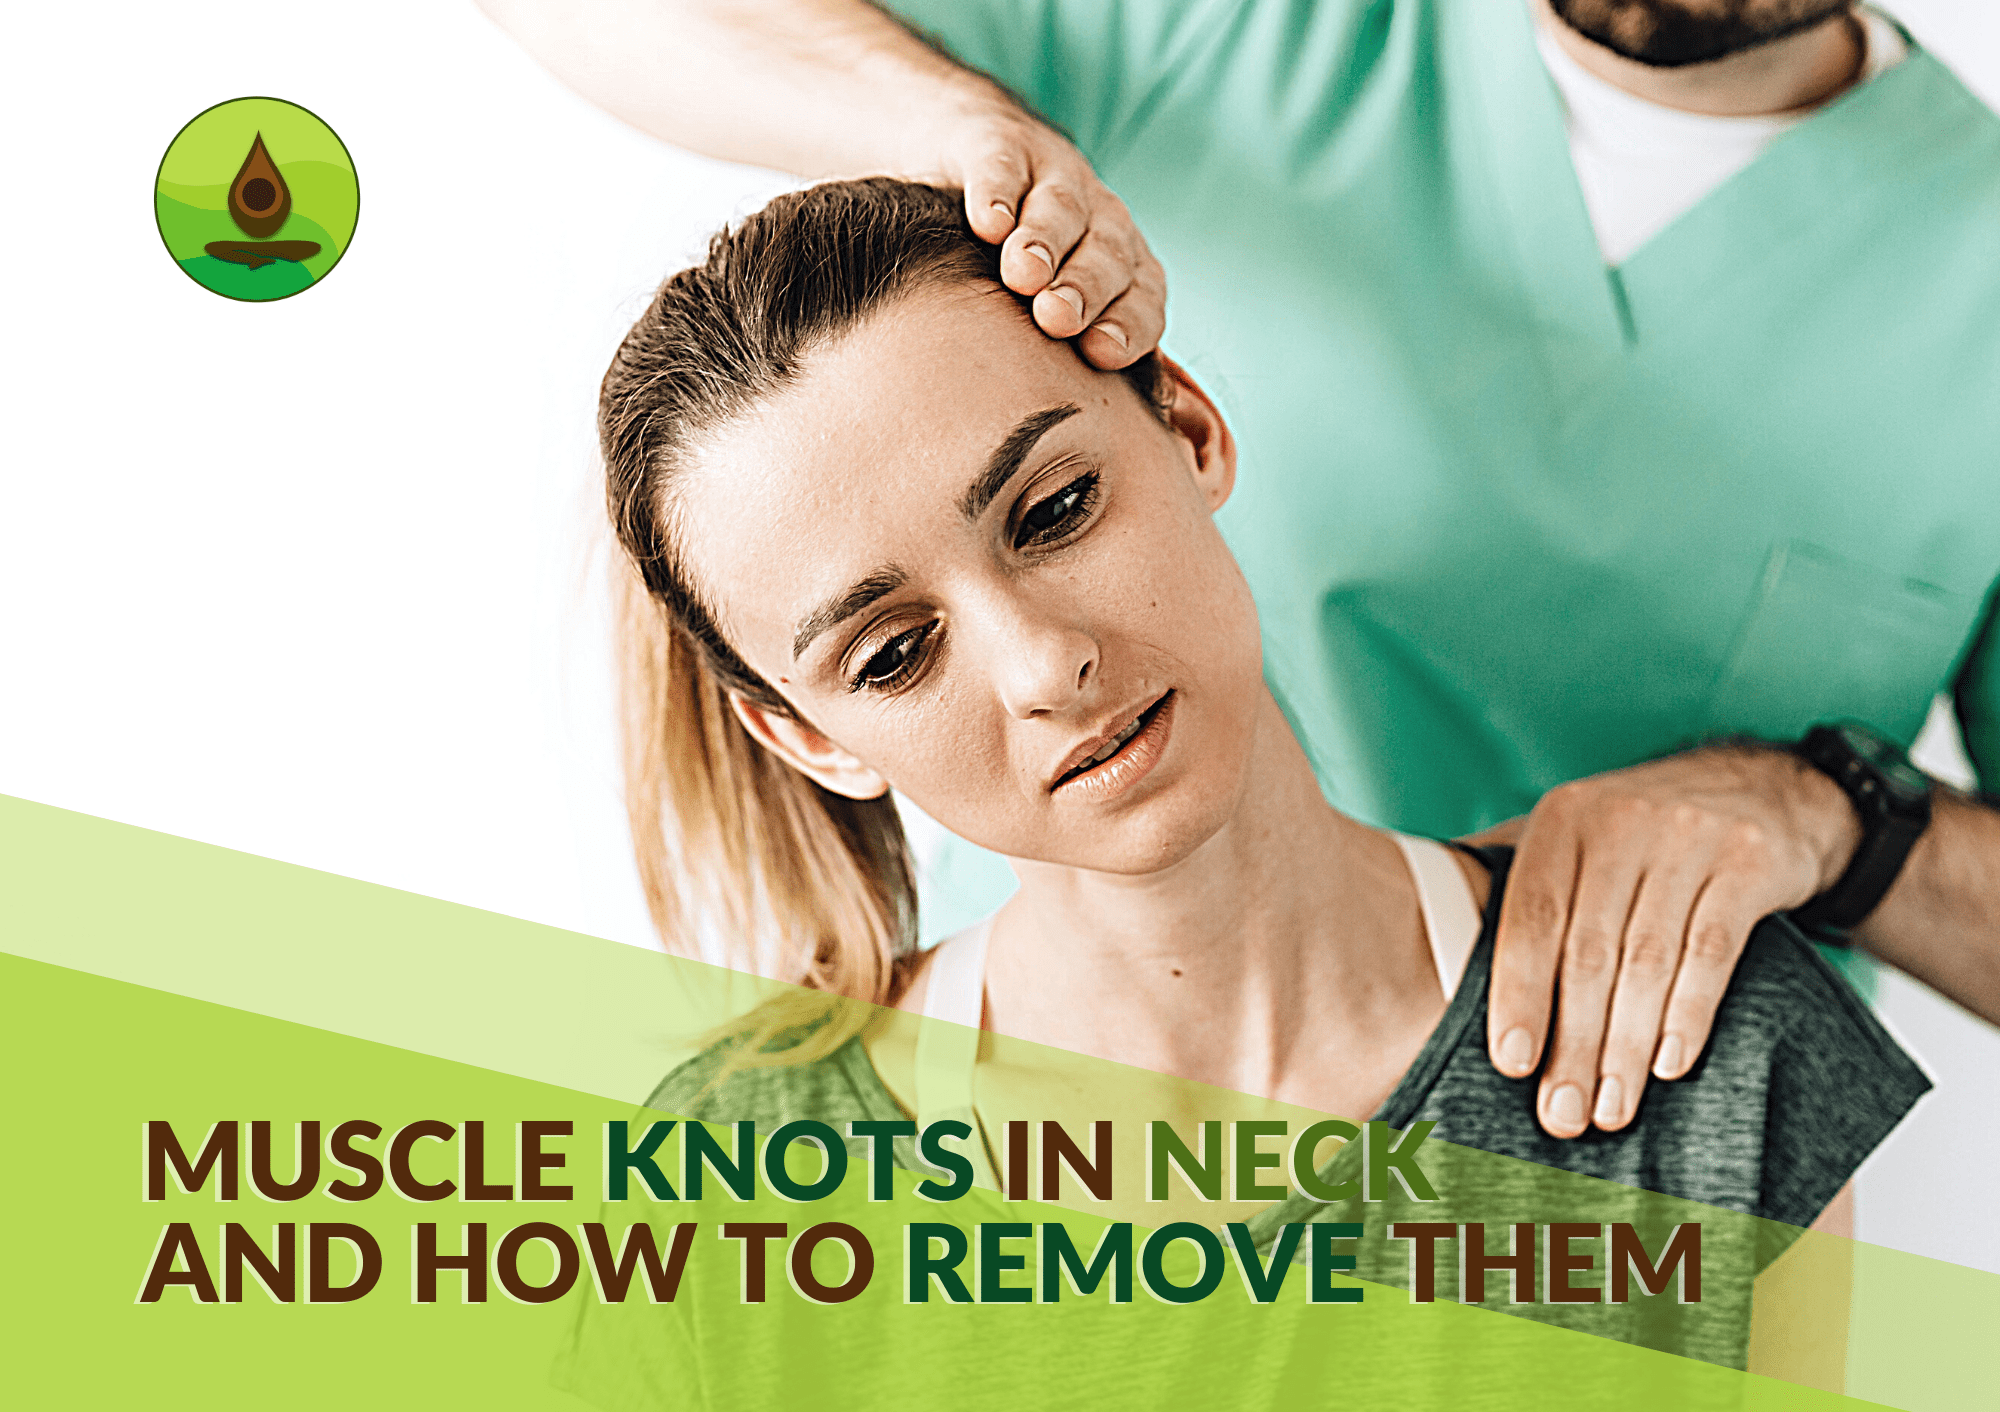 muscle knot in neck pain